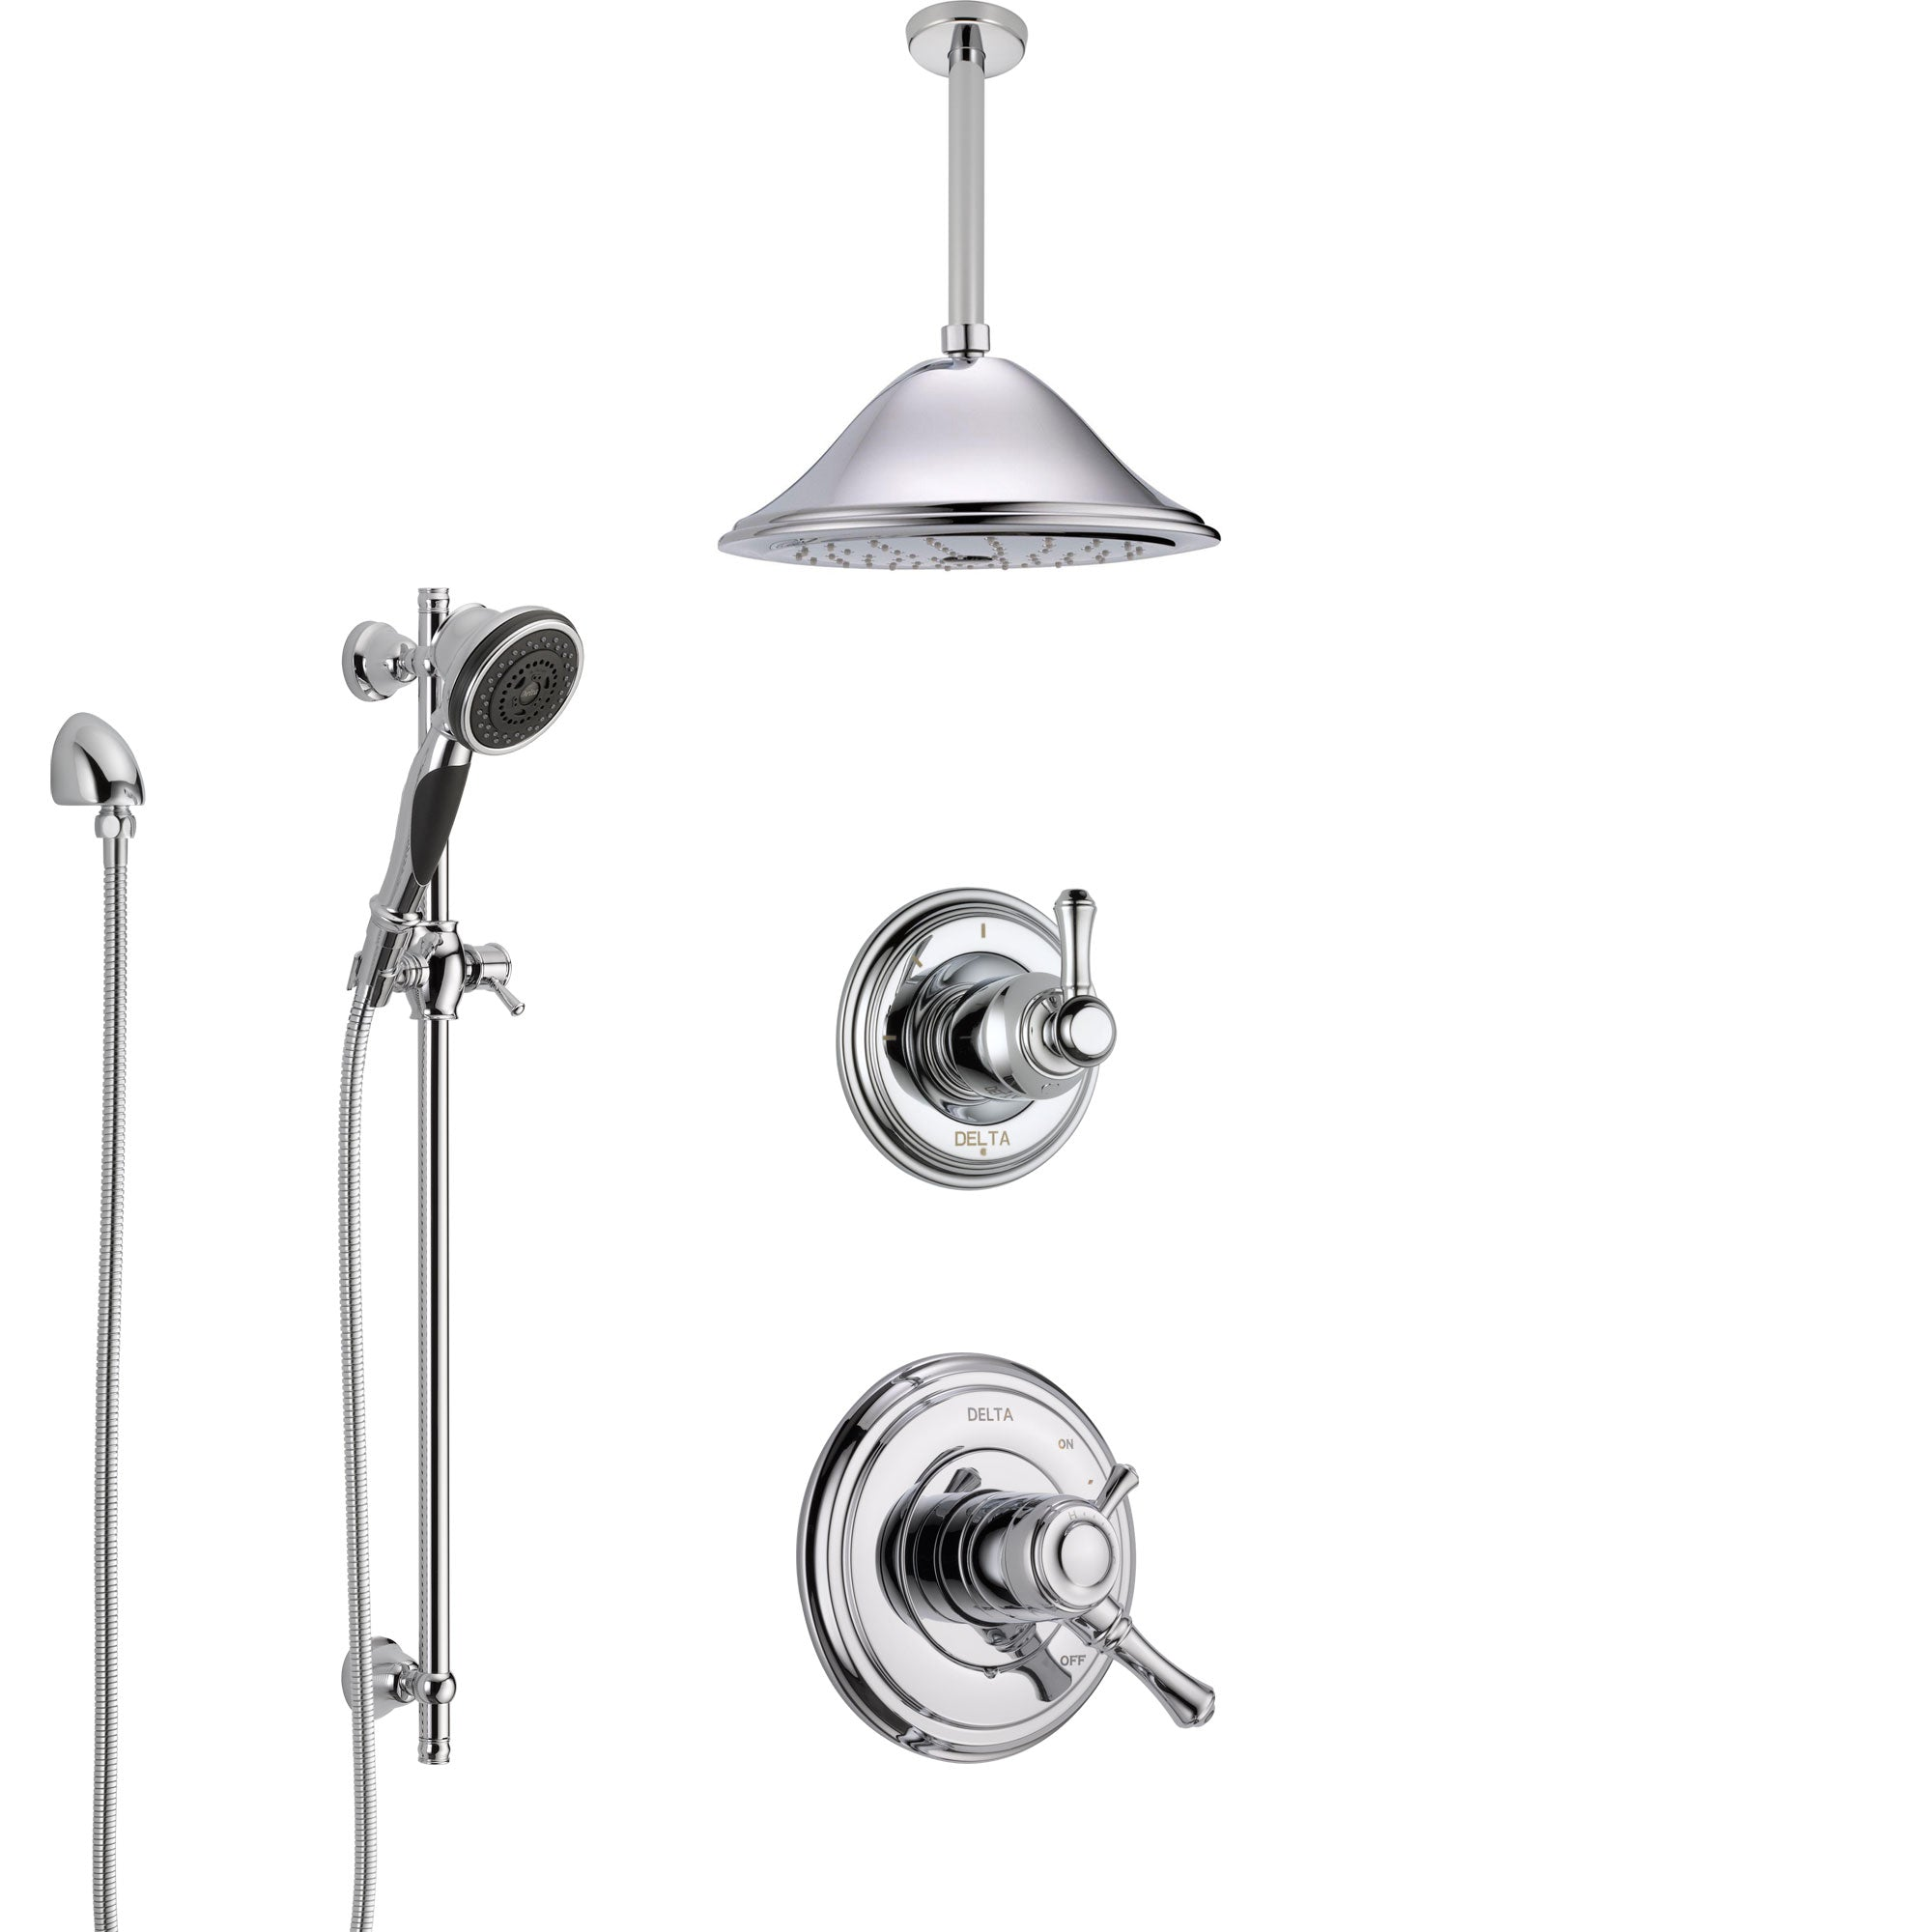 Delta Cassidy Chrome Finish Shower System with Dual Control Handle, Diverter, Ceiling Mount Showerhead, and Hand Shower with Slidebar SS17973